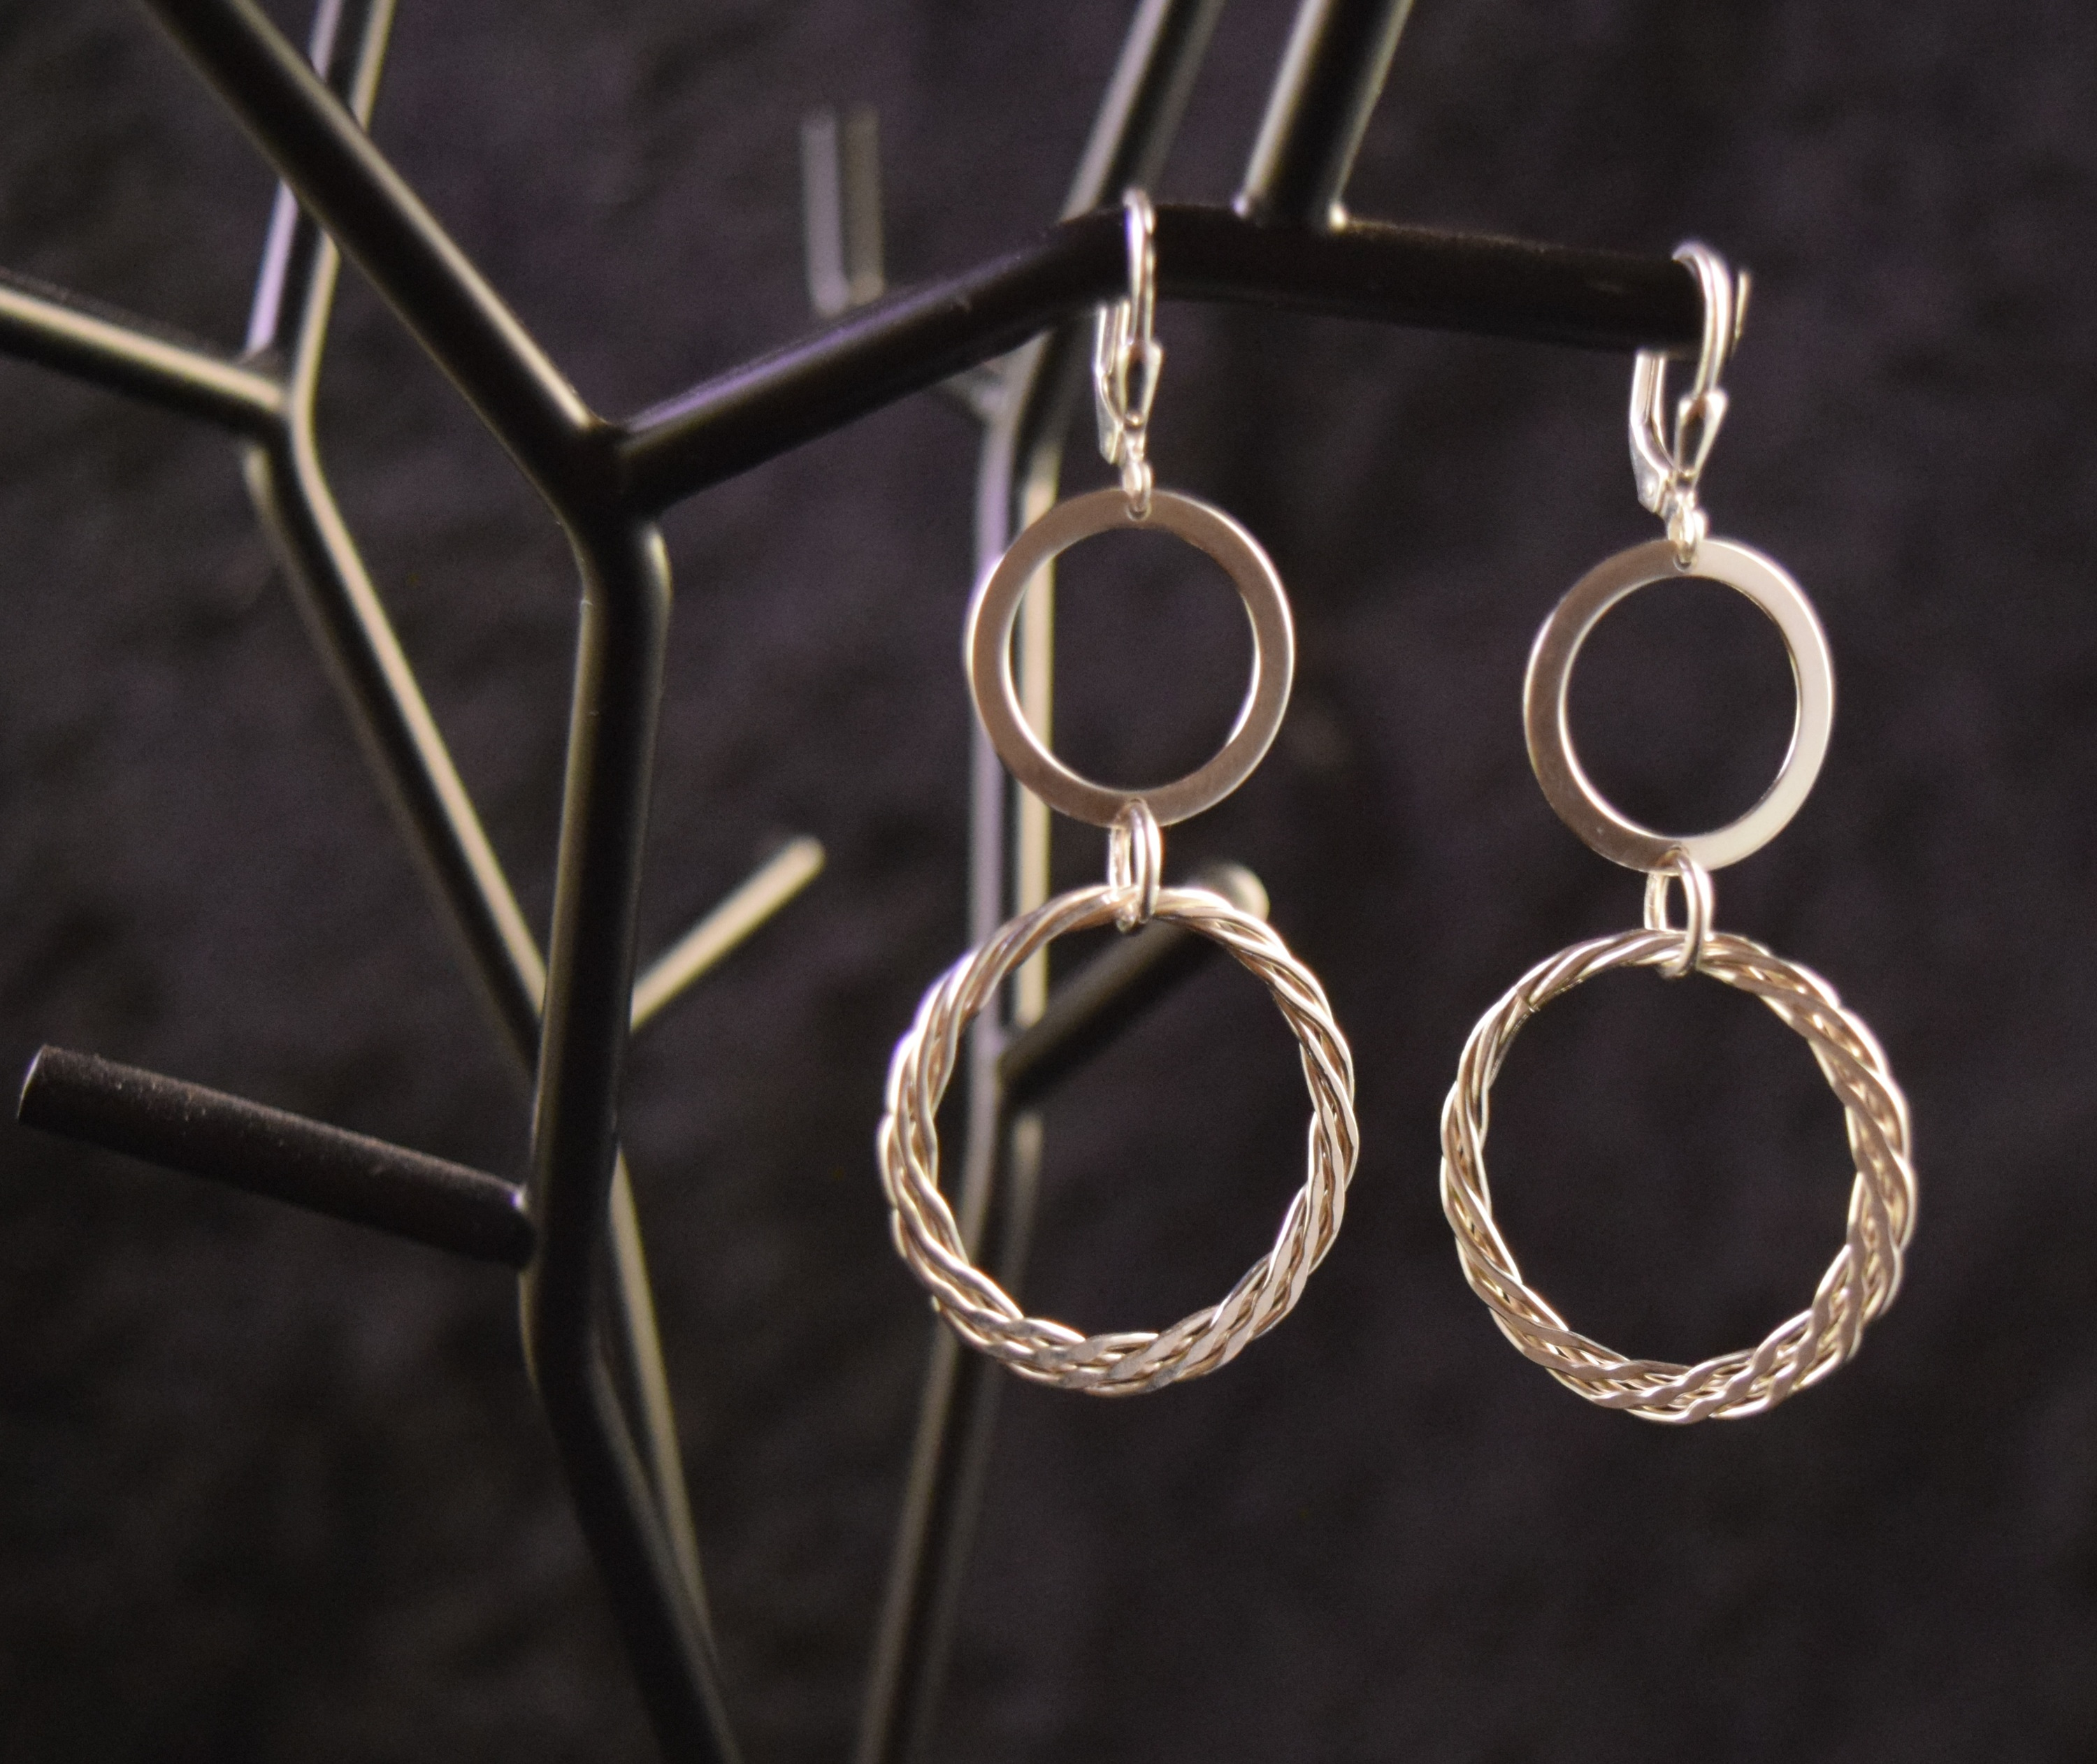 Sve014 double twisted round dangling earrings 925 silver 2 uncej6